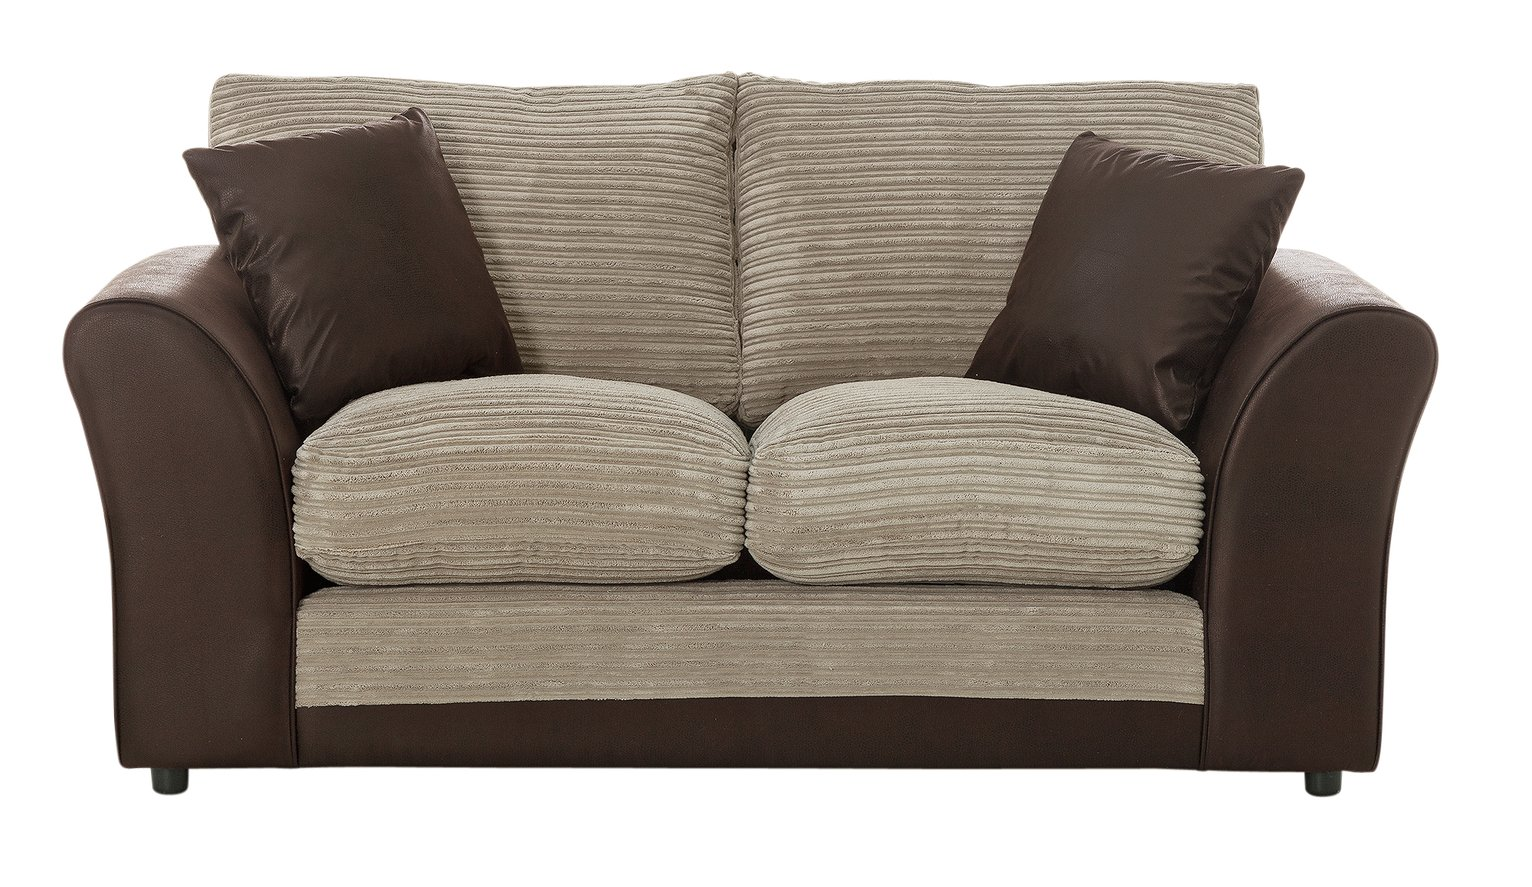 HOME - Harley 2 Seater - Fabric Sofa - Natural